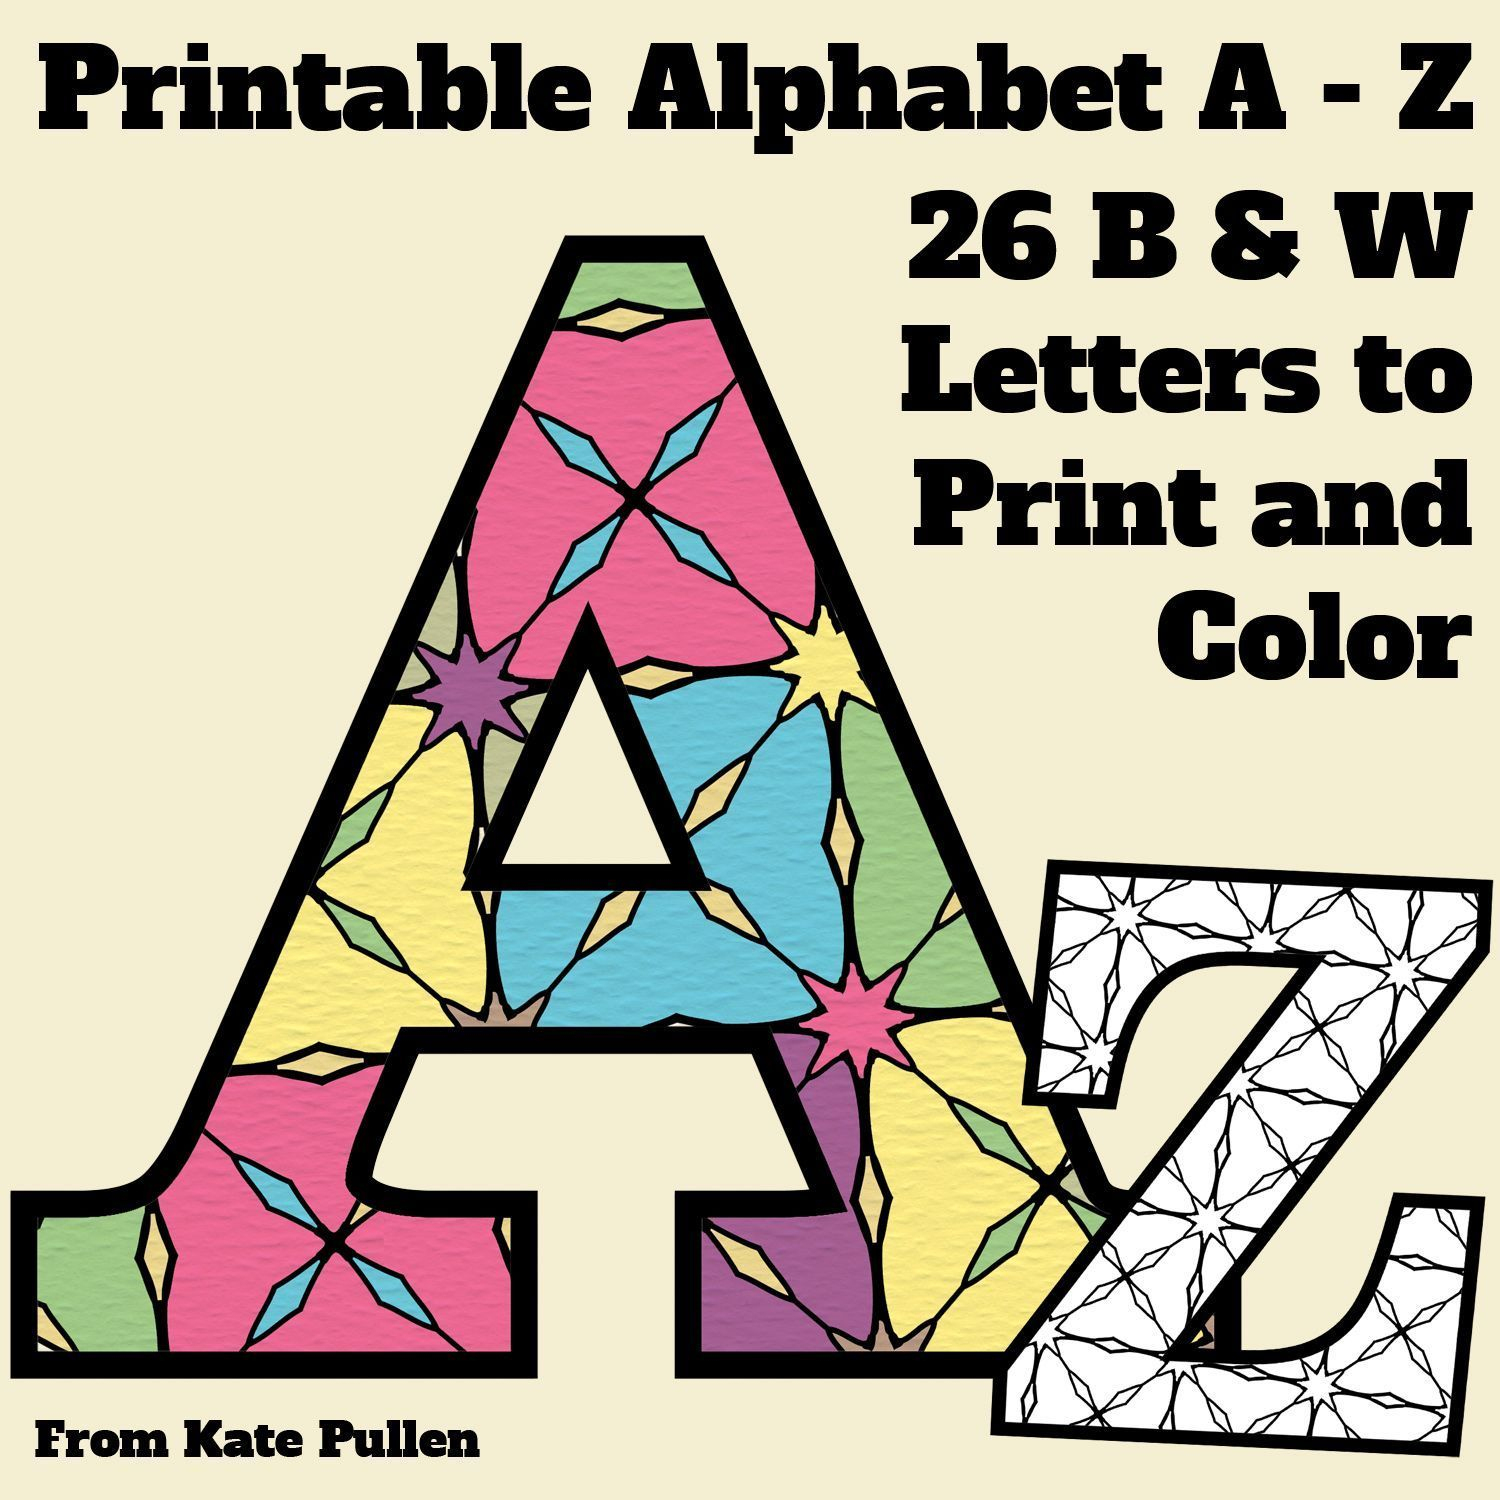 Here's A Set Of Printable Alphabet Letters To Download And Print - Free Printable Alphabet Letters To Color